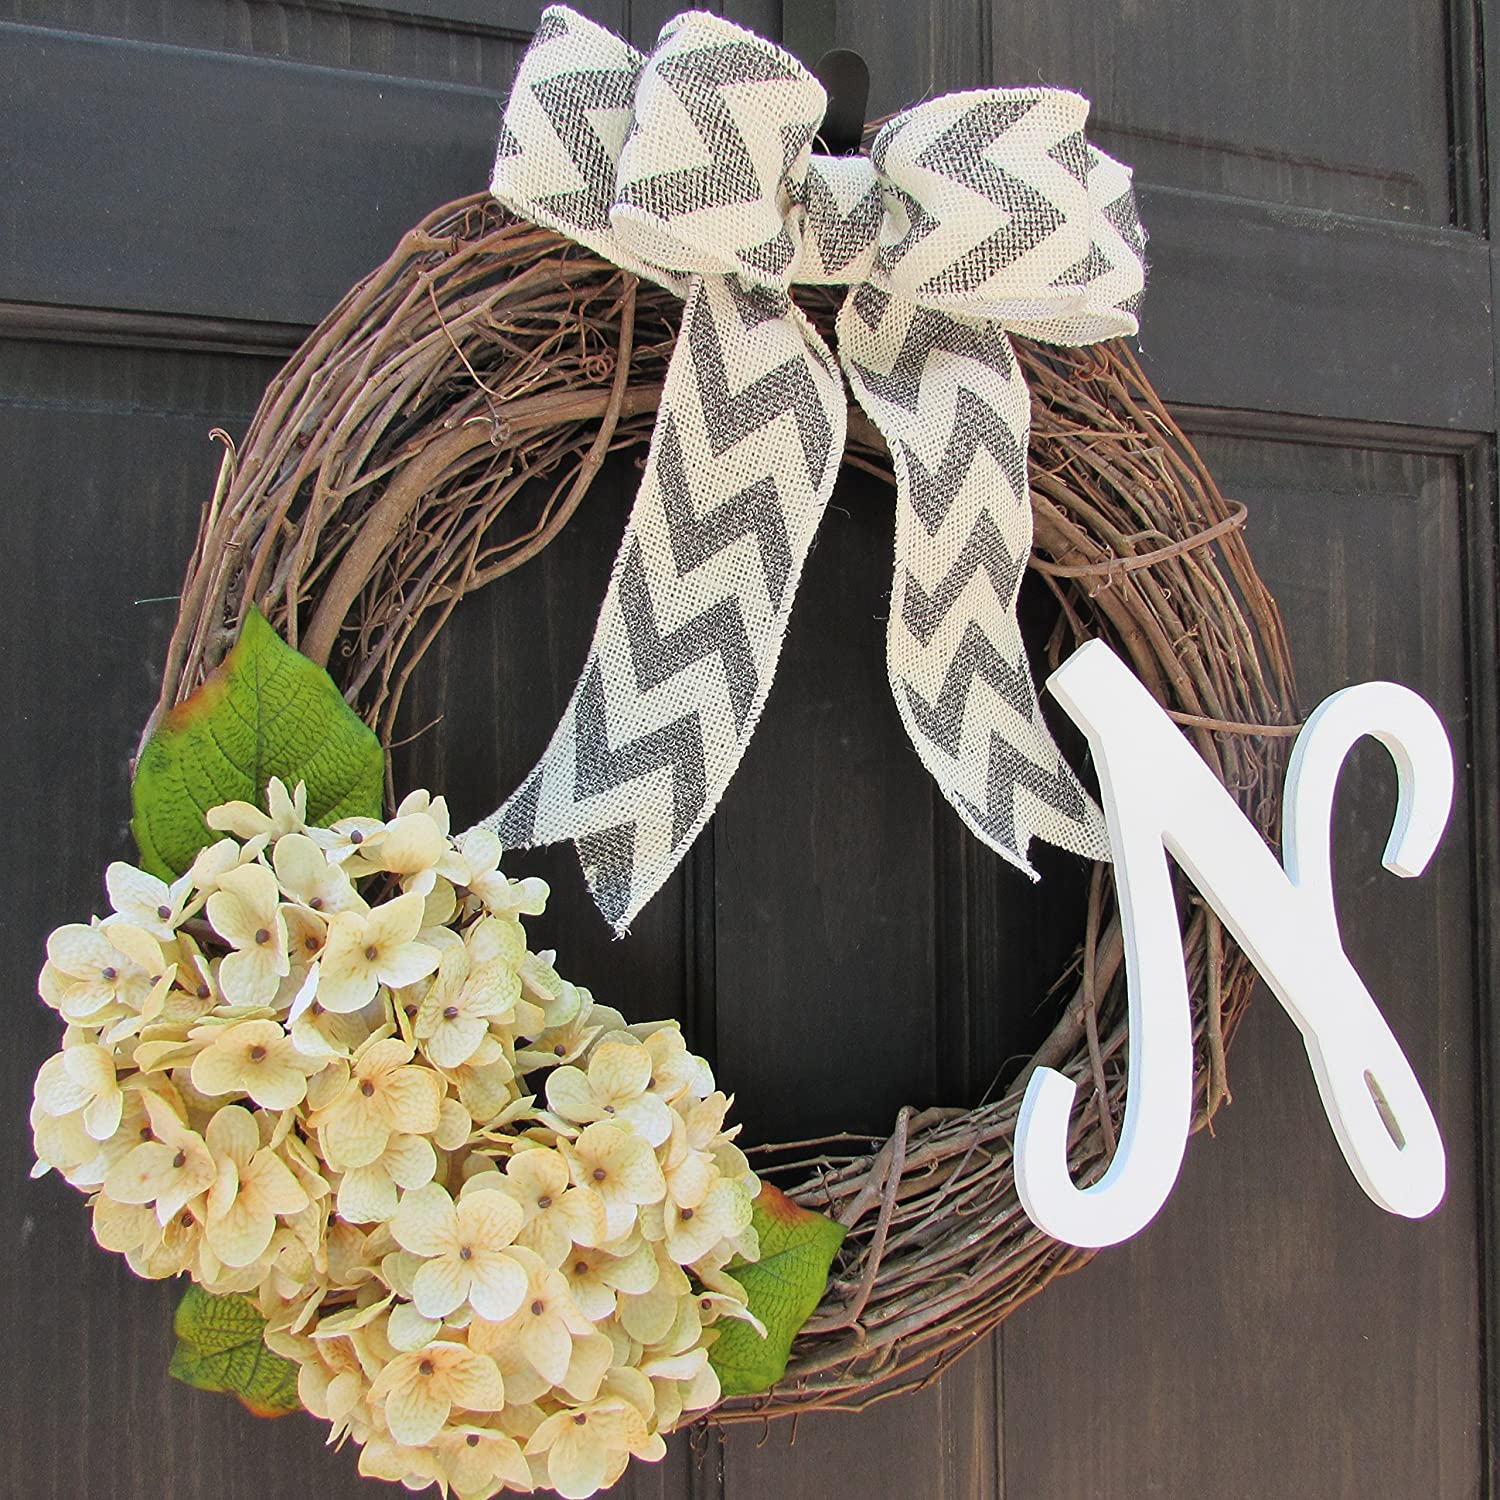 Amazon.com: Custom Year Round Monogram Wreath; All Season Front Door Hanger  With Initial; Cream Hydrangea Grapevine Decor With Letter Choice: Handmade